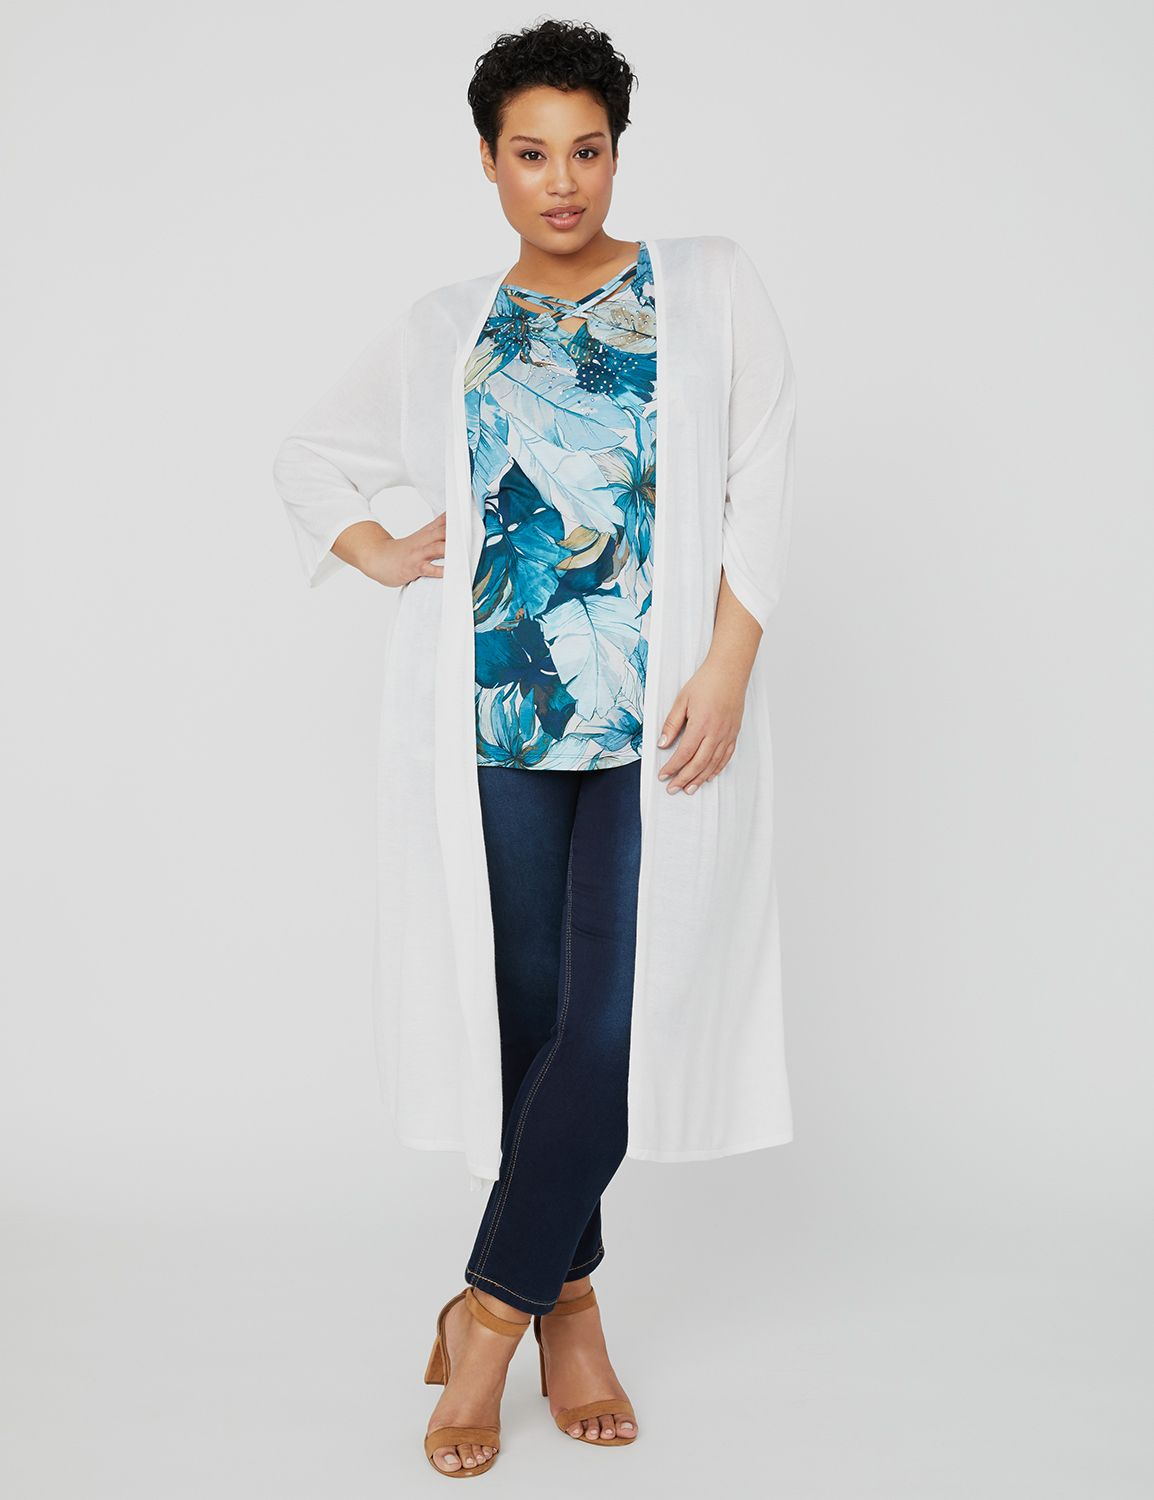 Ocean Waves Cardigan 1087803 Convertible Cardigan MP-300098481